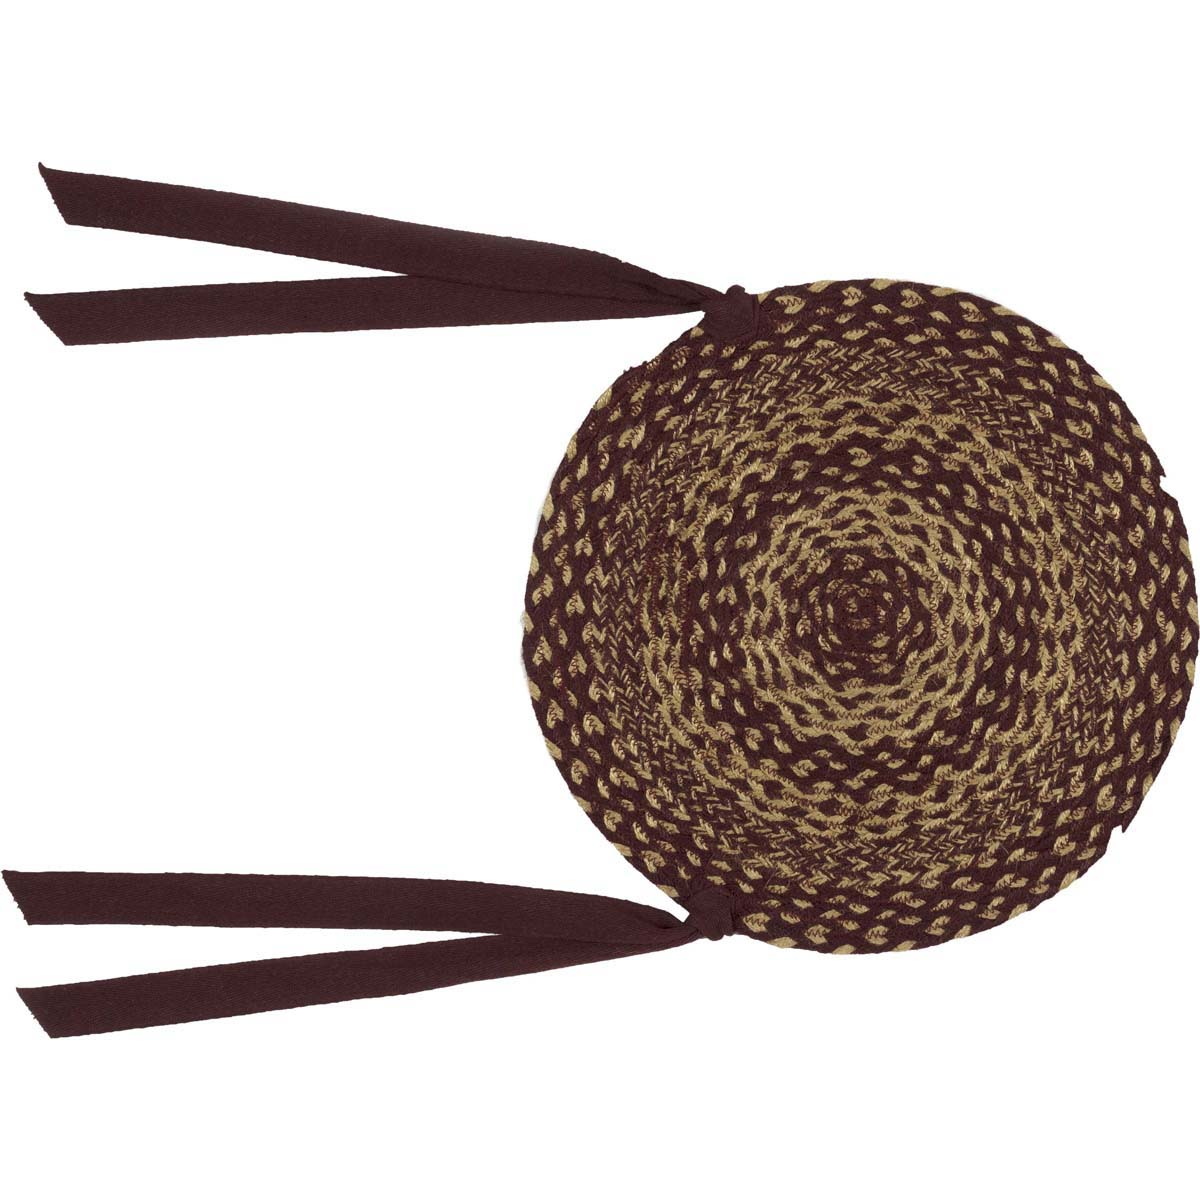 Burgundy-Tan-Jute-Chair-Pad-Set-of-6-image-5